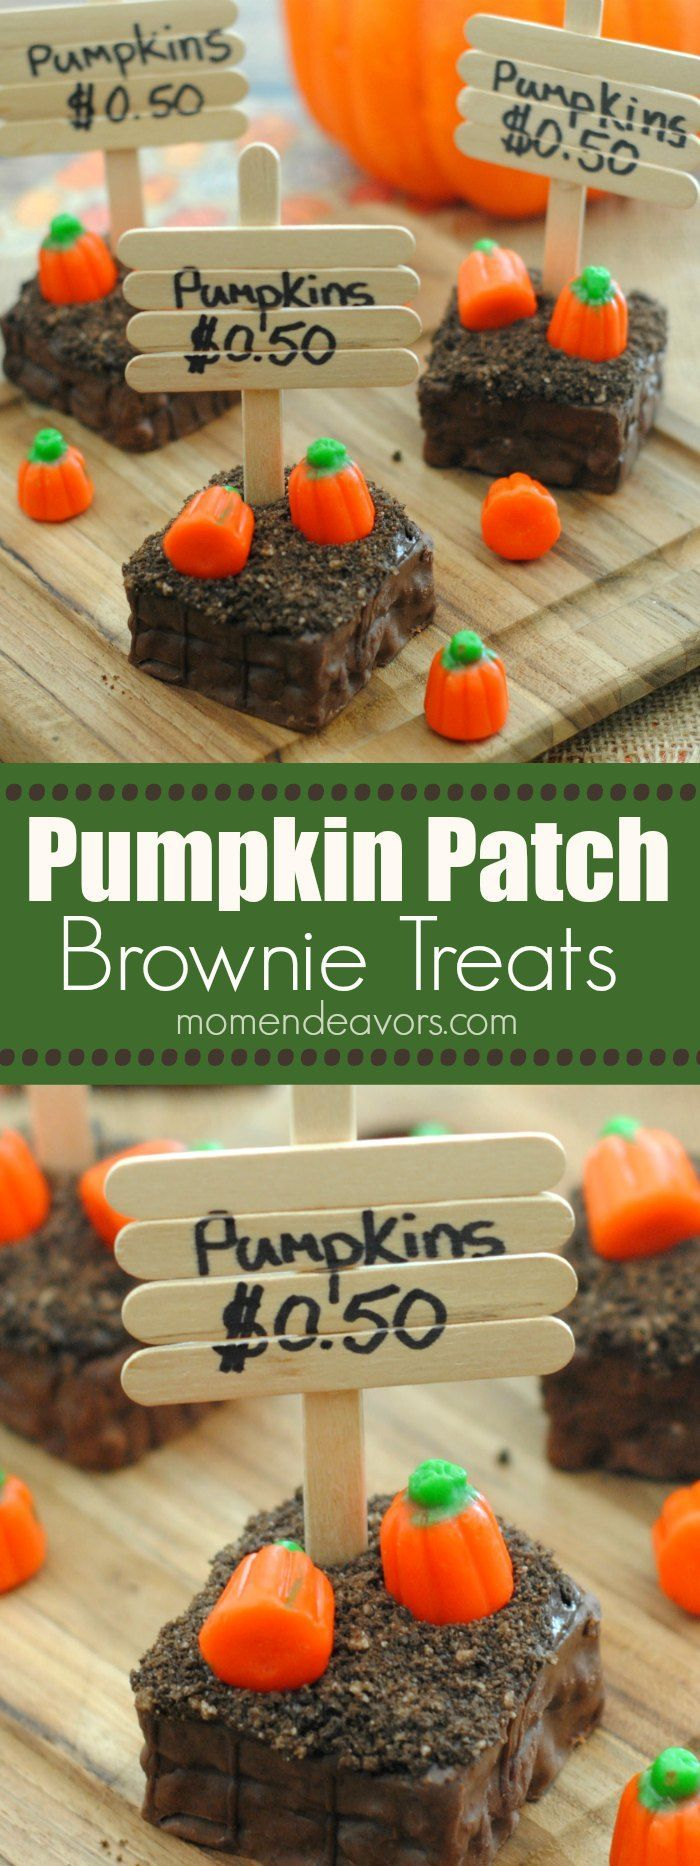 Pumpkin patch bownie treats - perfect a Halloween party treat ...